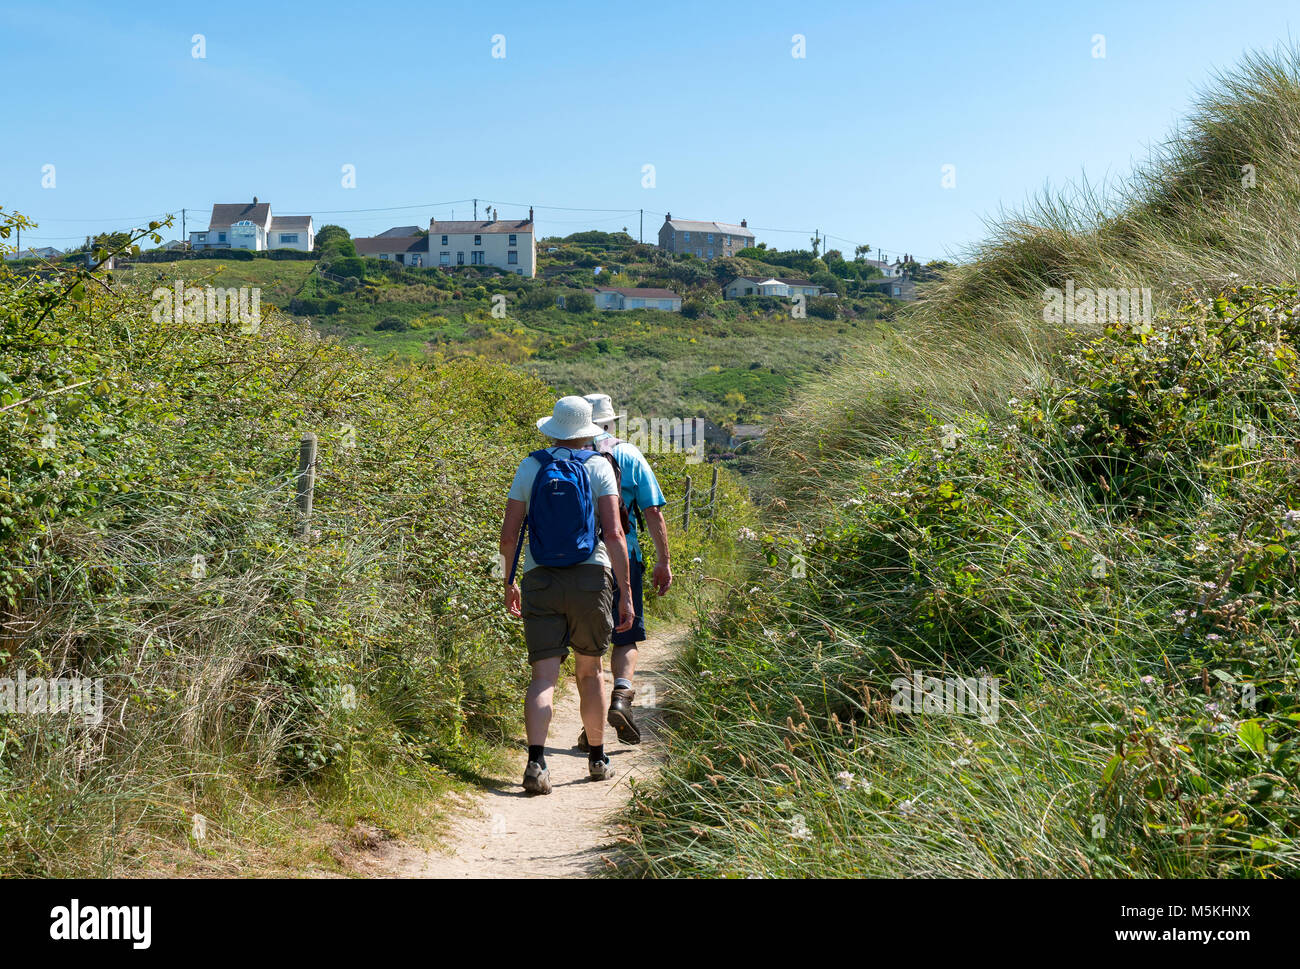 people walking on the south west coast path nears ennen cove in cornwall, england, britain, uk, - Stock Image